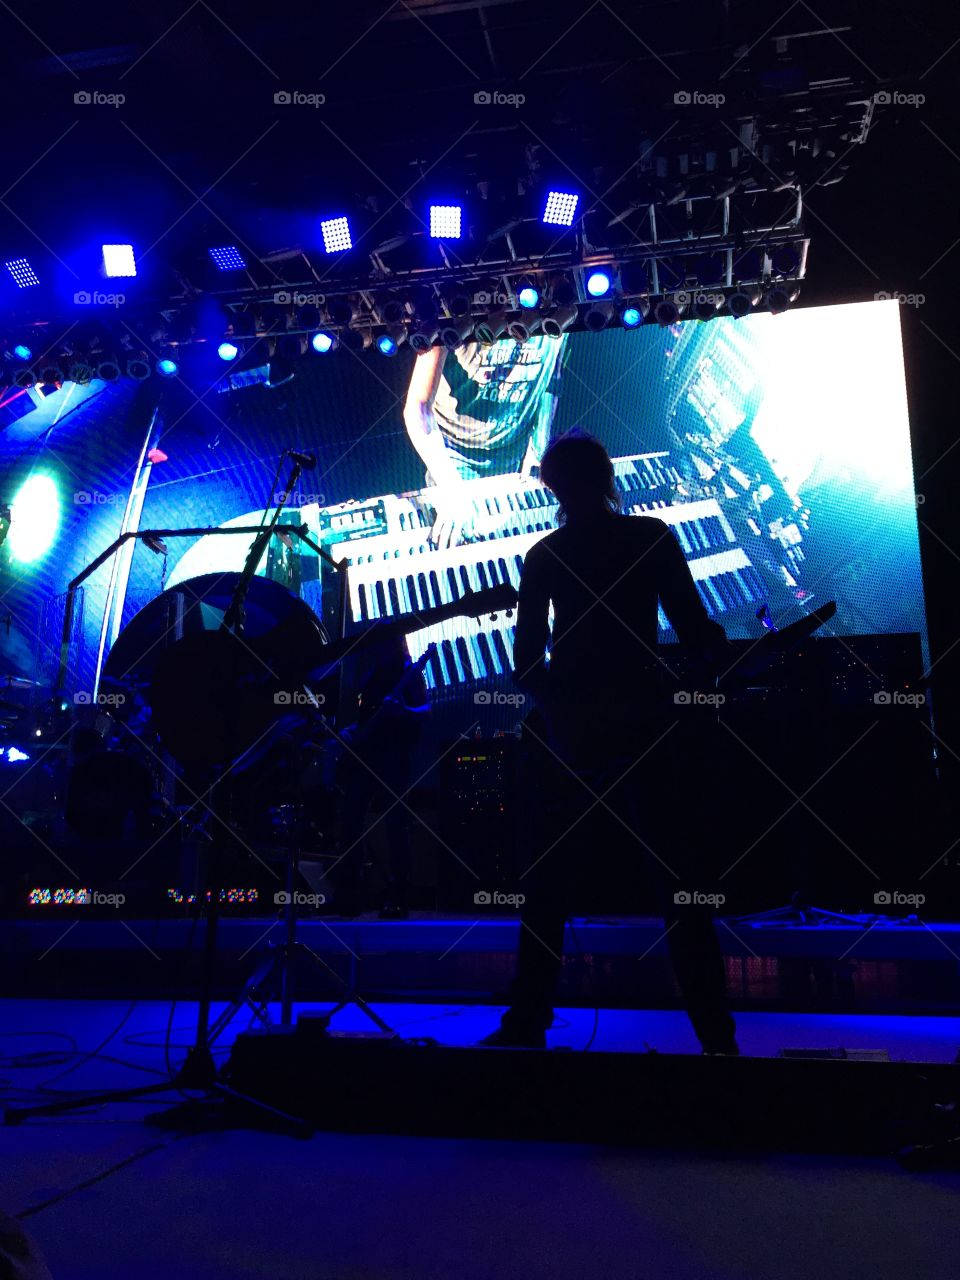 Boston guitarist Tom Scholz on stage, performing a keyboard solo against a video backdrop at the Saint Augustine amphitheater in Florida May 24, 2015